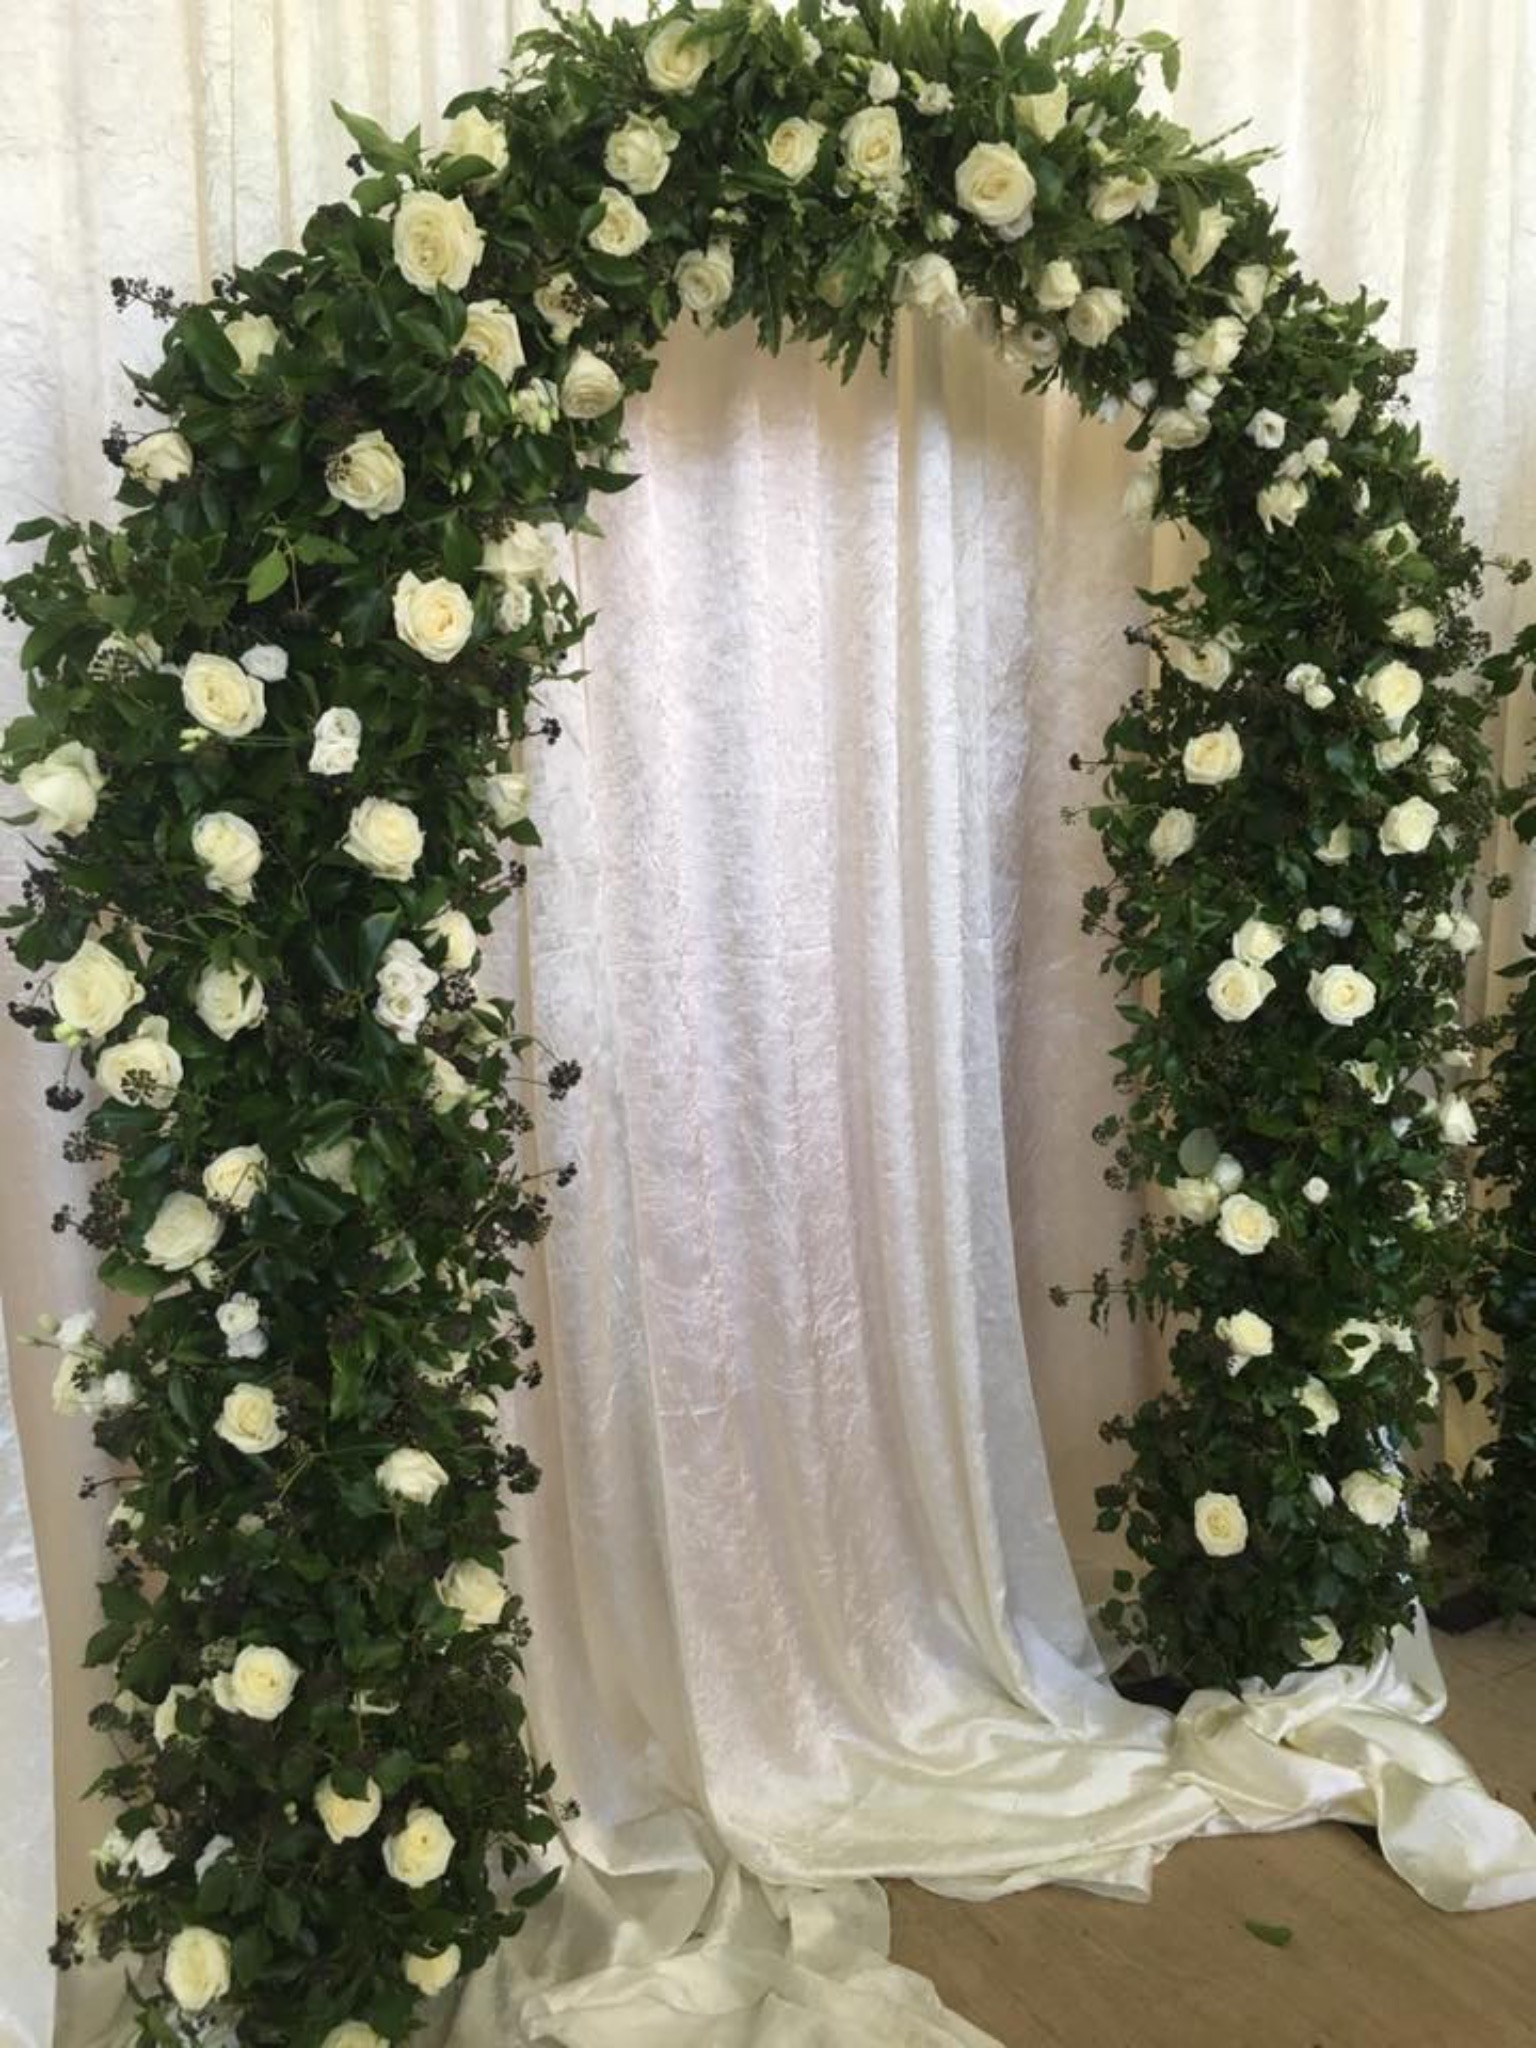 Floral Arch with Greenery 3